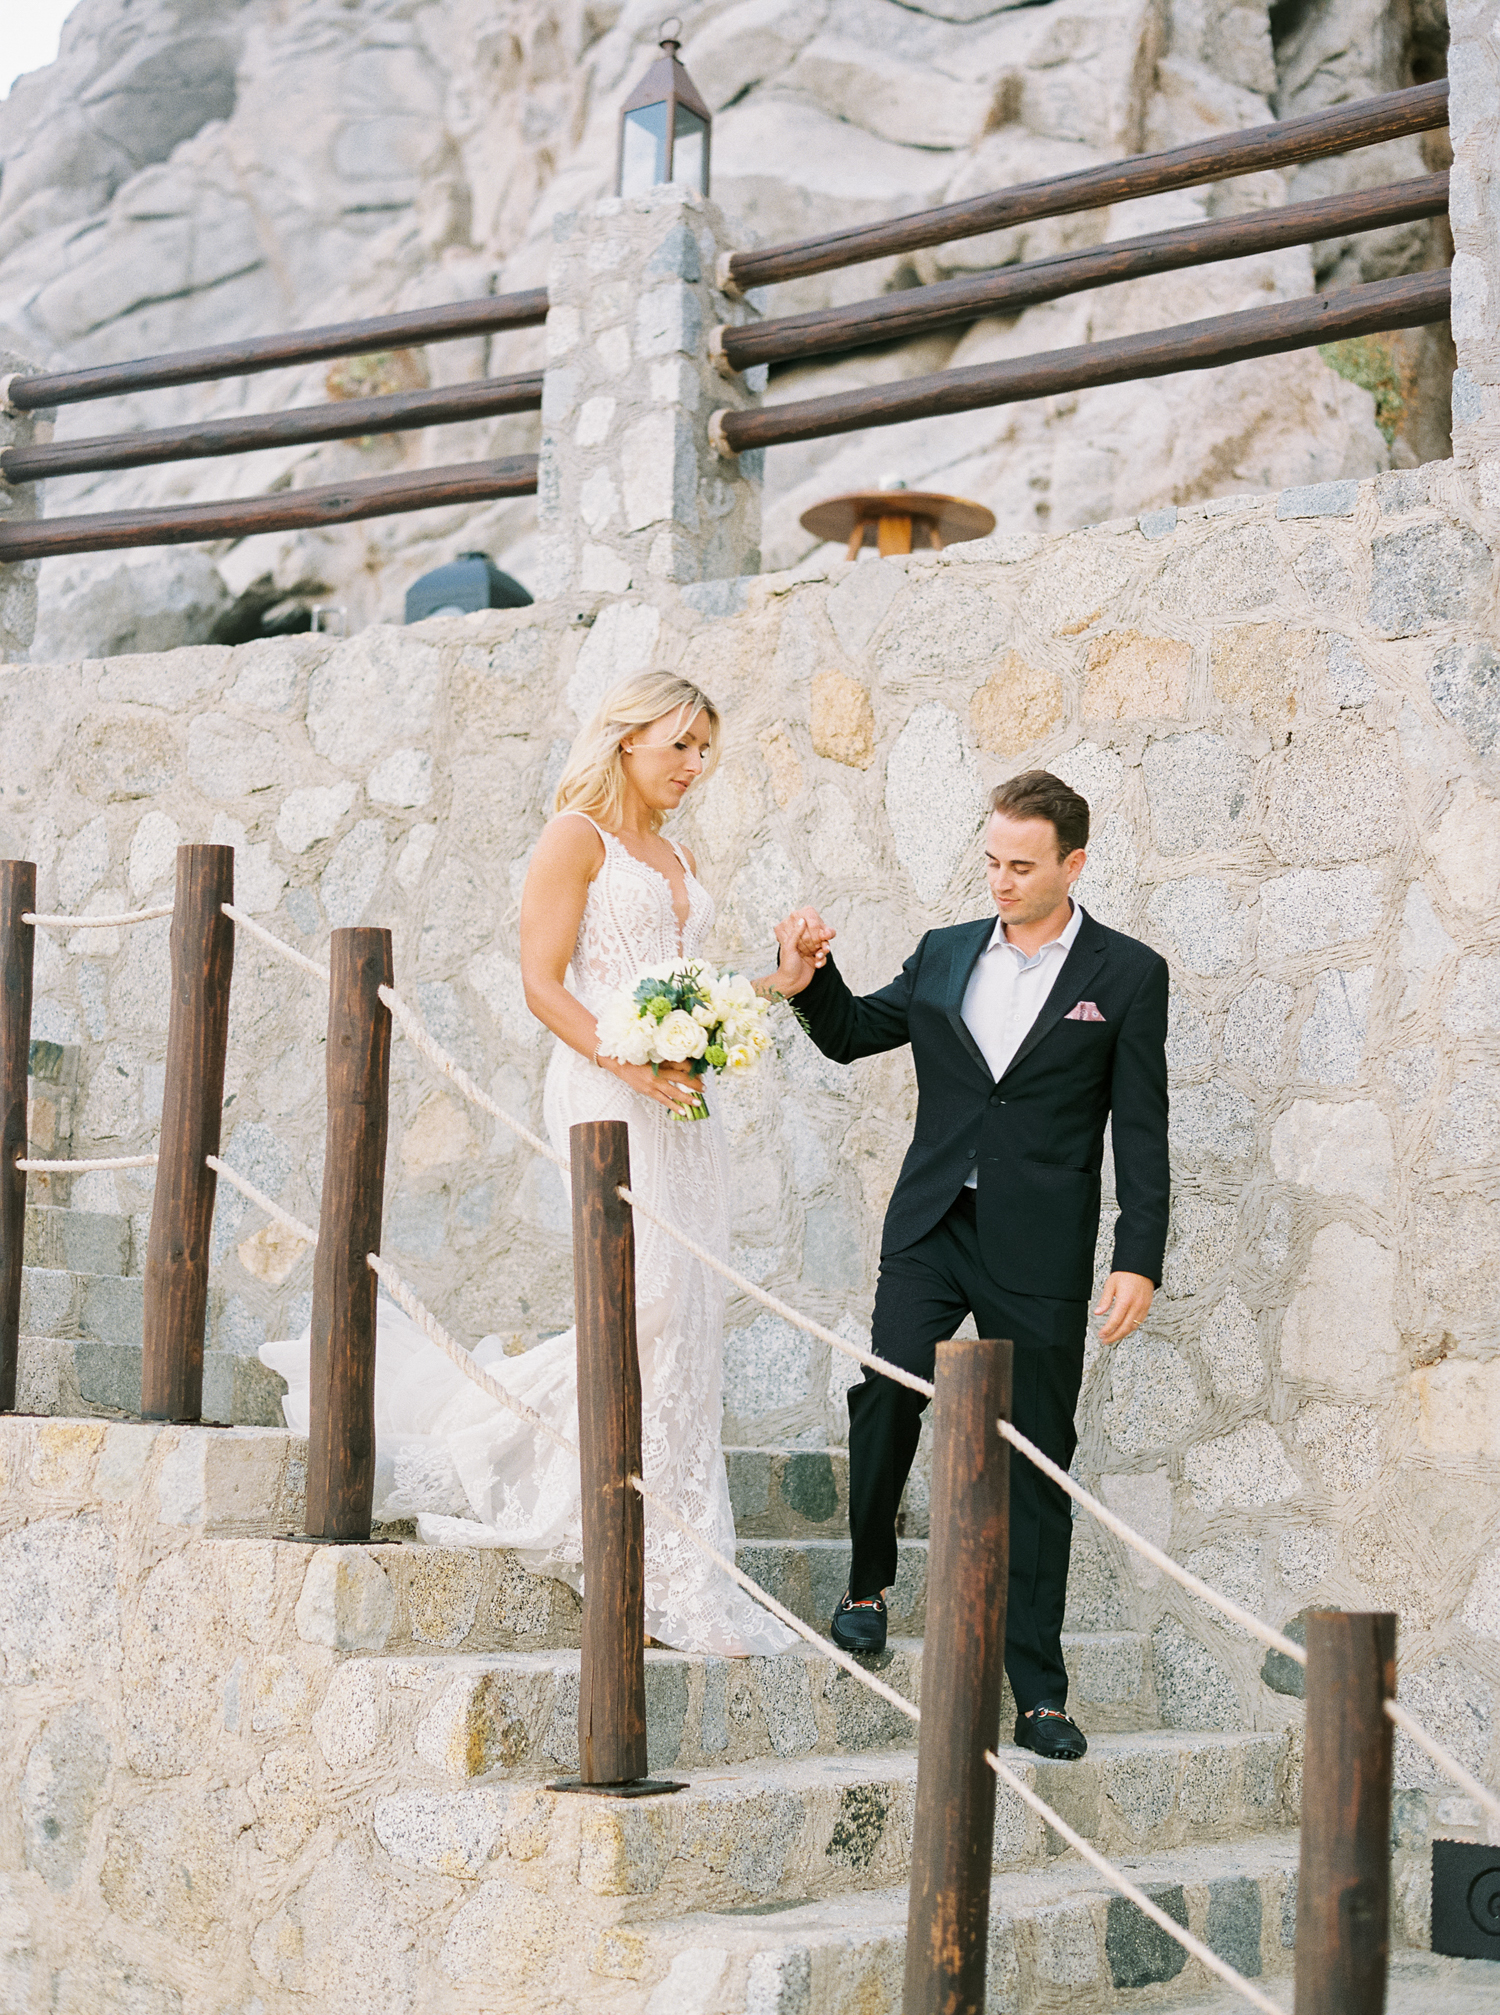 Brittany & Kenny - Resort at Pedregal   Cabo San Lucas, MexicoVendors: Ceremony & Reception: Resort at Pedregal   Planning & Florals: Elena Damy   Bride's Dress: Pallas Couture   Hair & Makeup: Alma Vellejo of Cabo MakeupFeatured on Carats & Cake